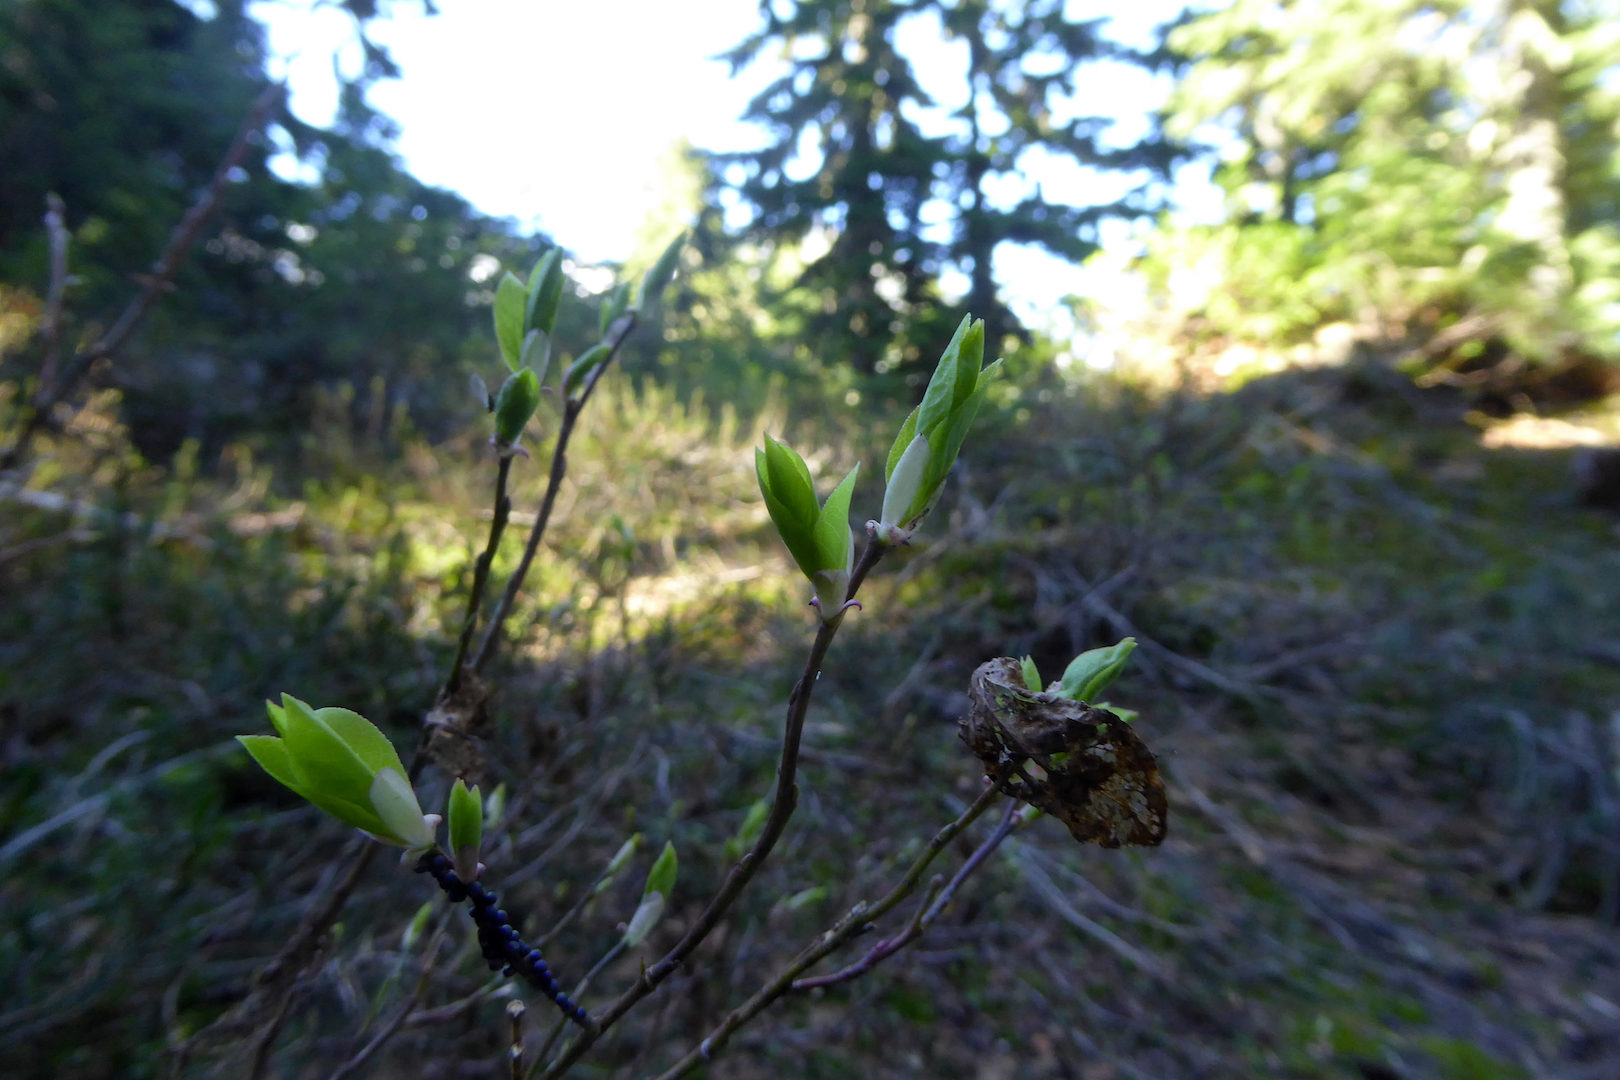 new leaves at the end of small twigs in shaded forest